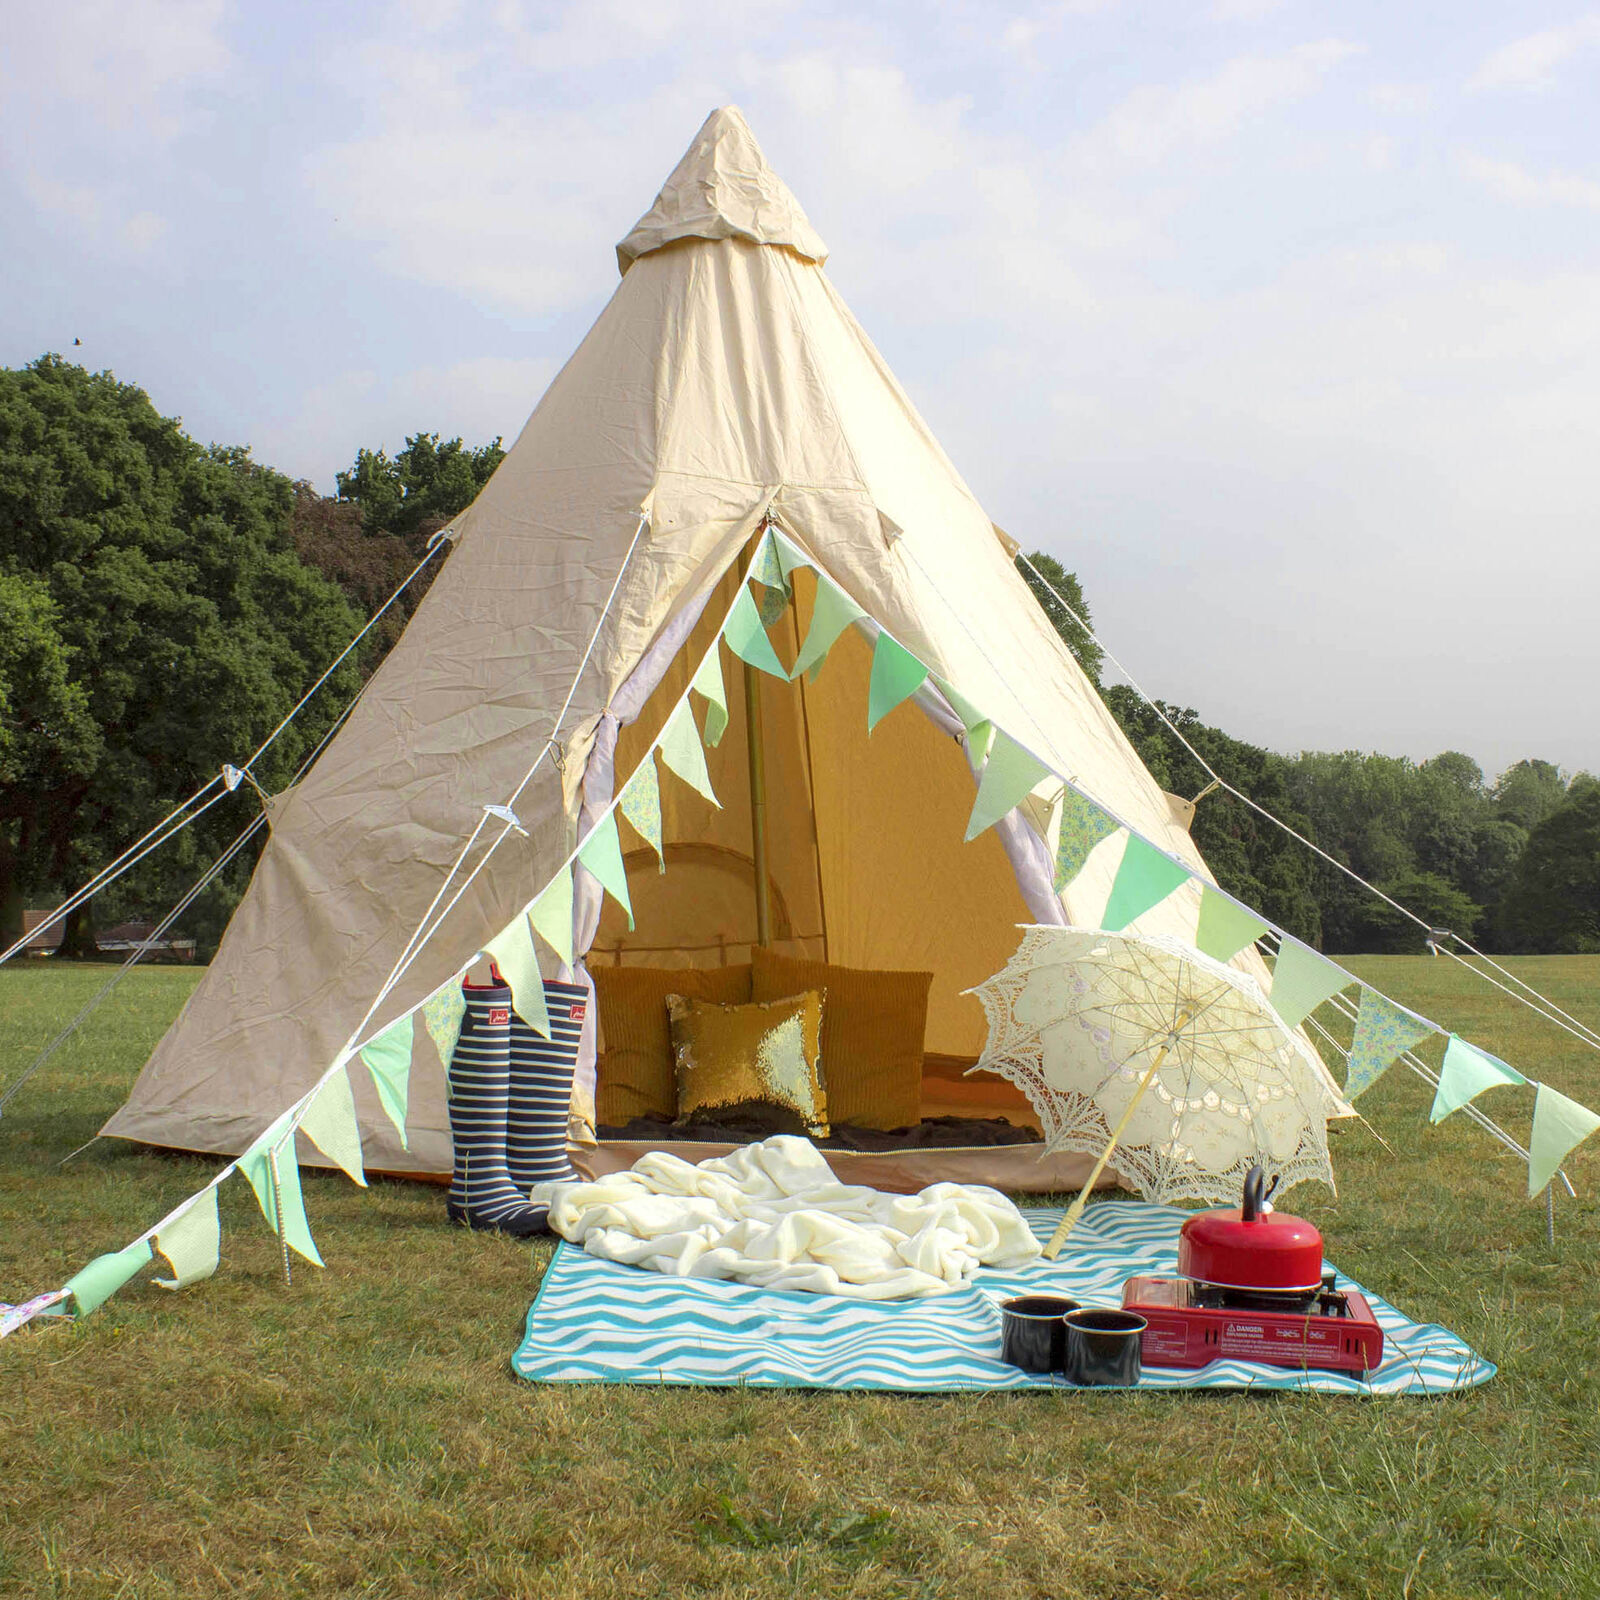 Glastonbury Glastonbury Glastonbury Wasserfest 4 Person Glamping Festival Wigwam Tipi Zelt 7ad1a2